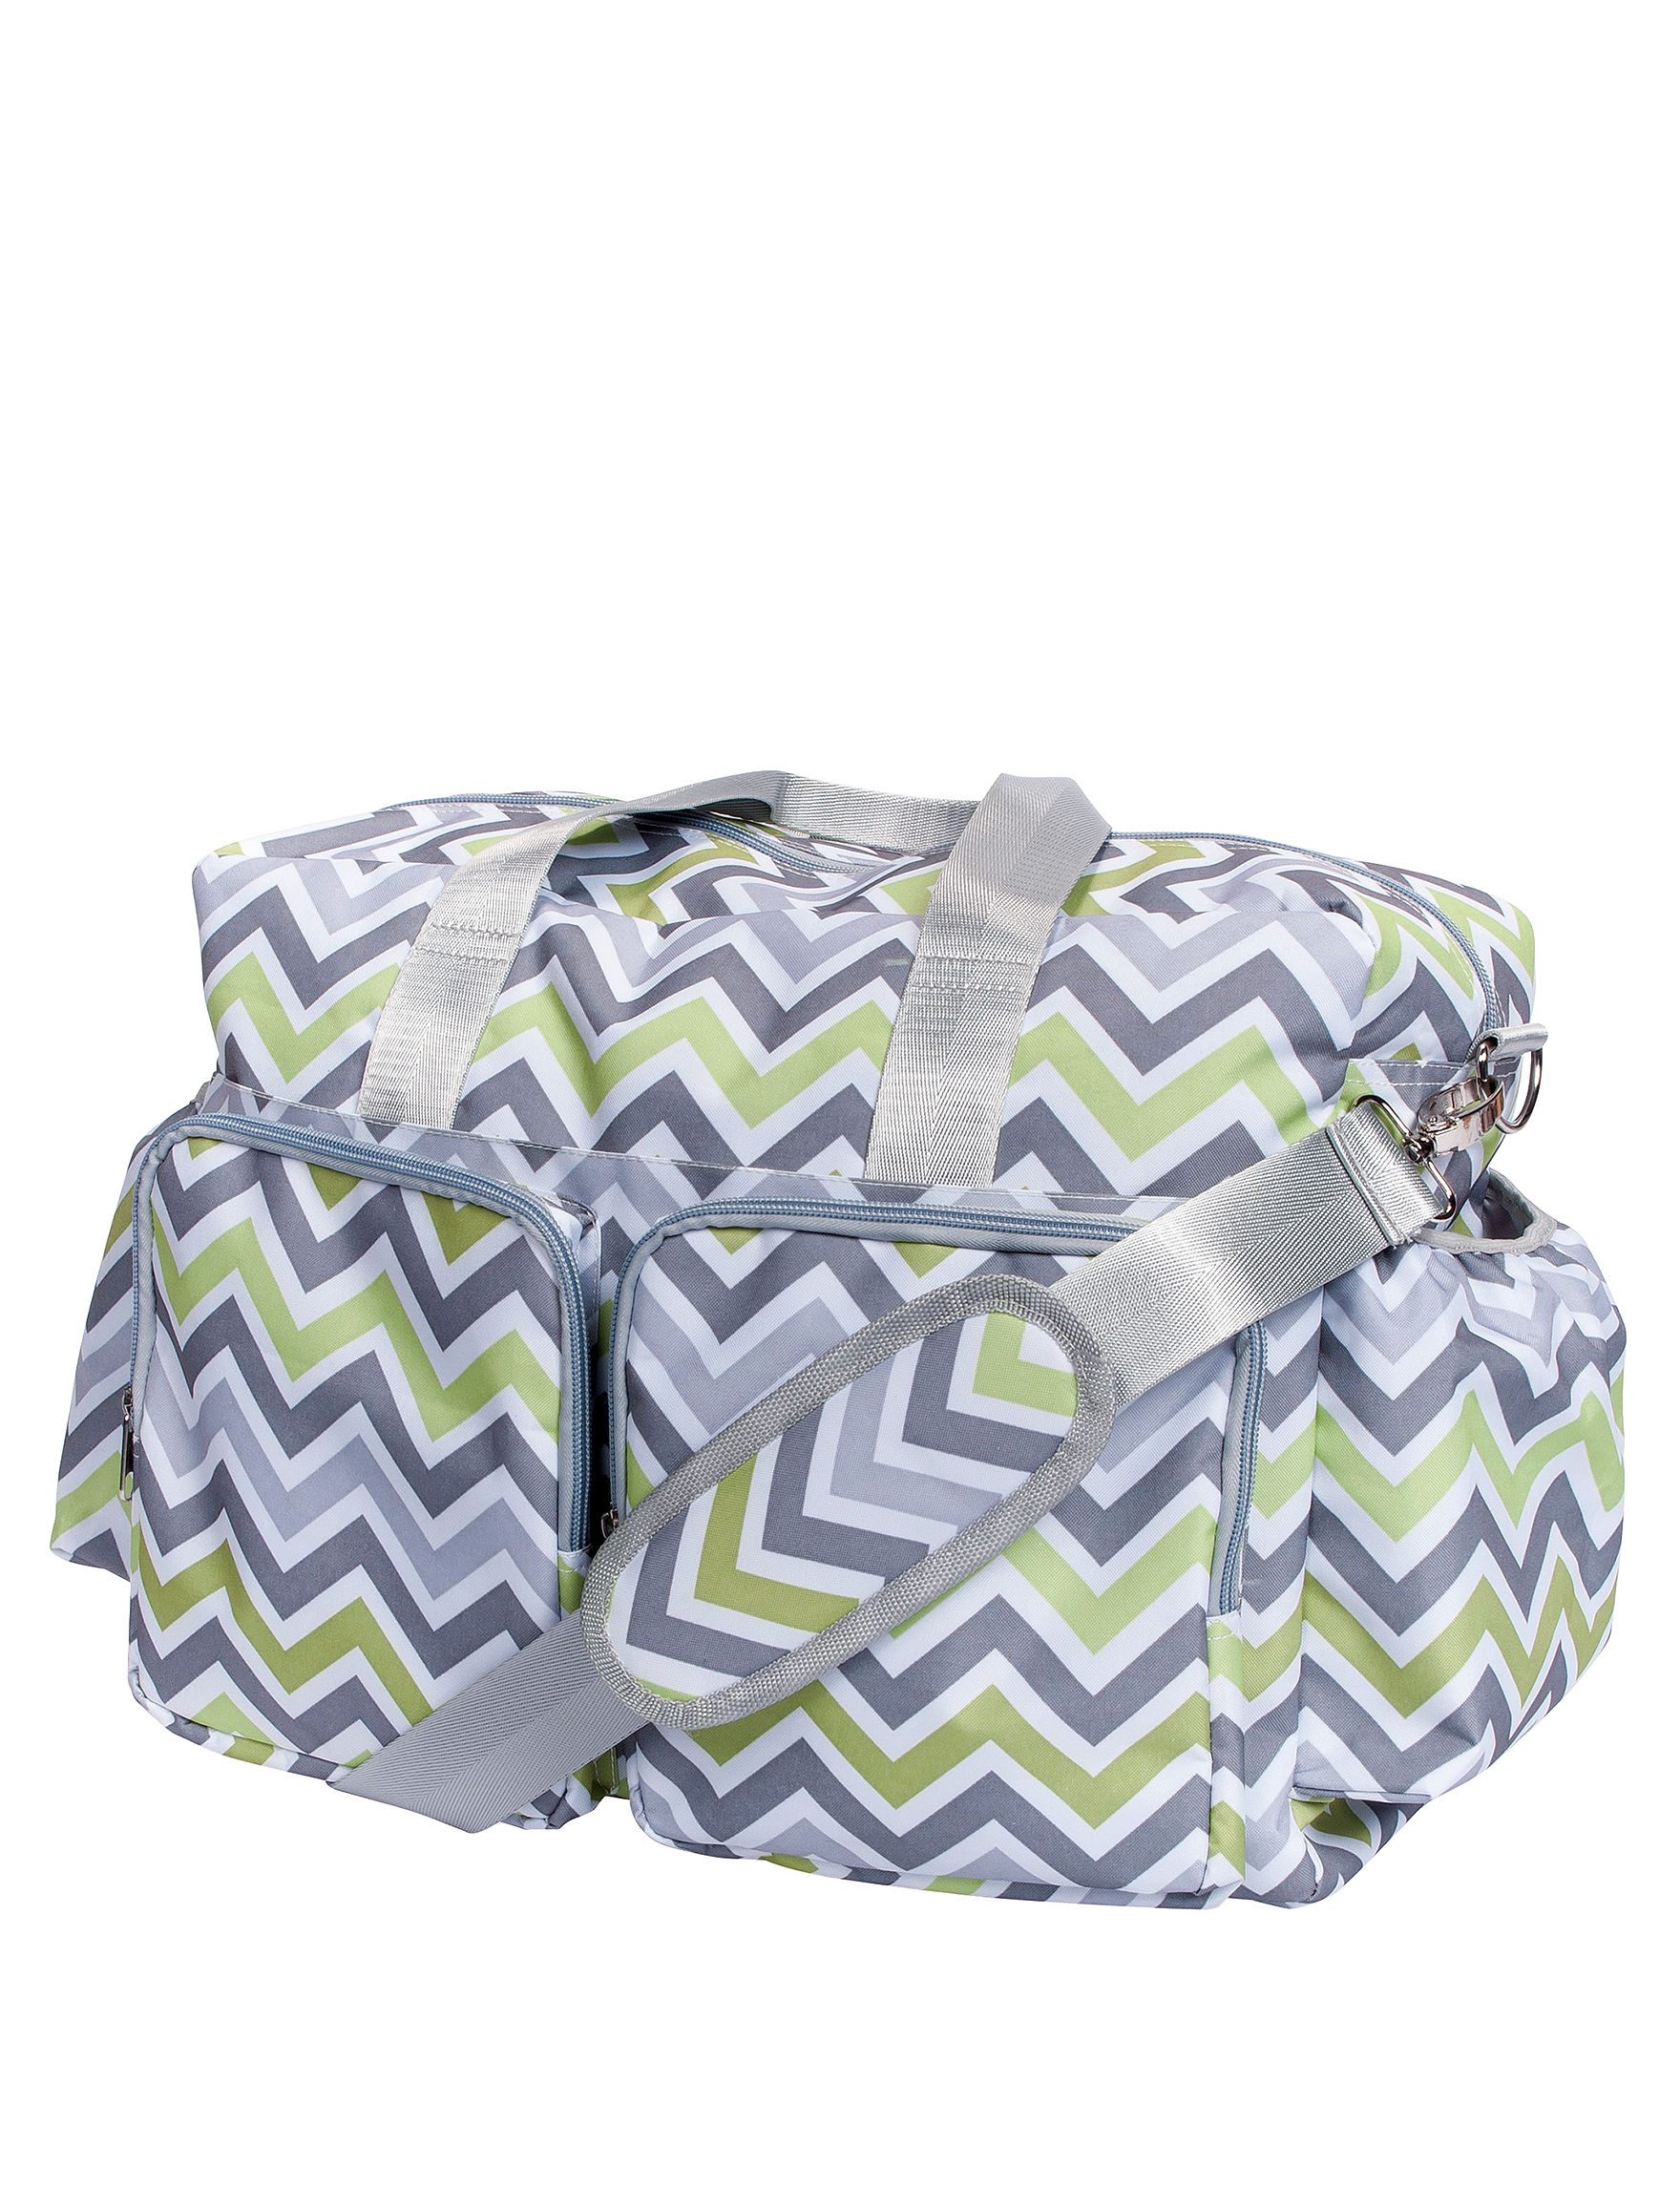 Trend Lab Green/Grey/White Diaper Bags